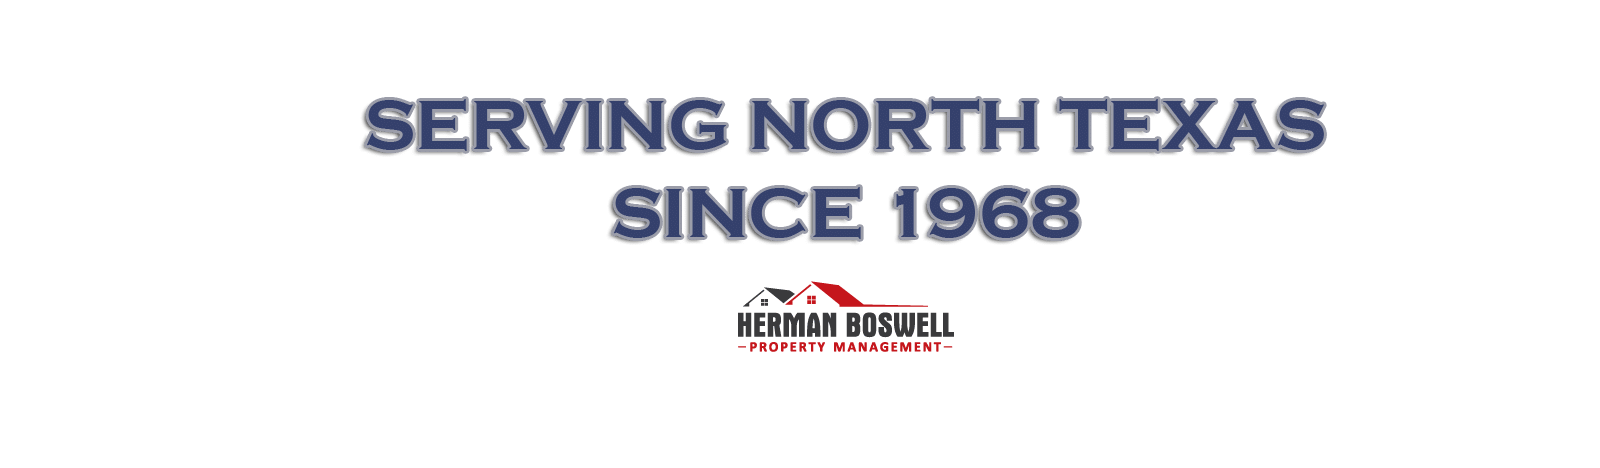 Serving North Texas since 1968